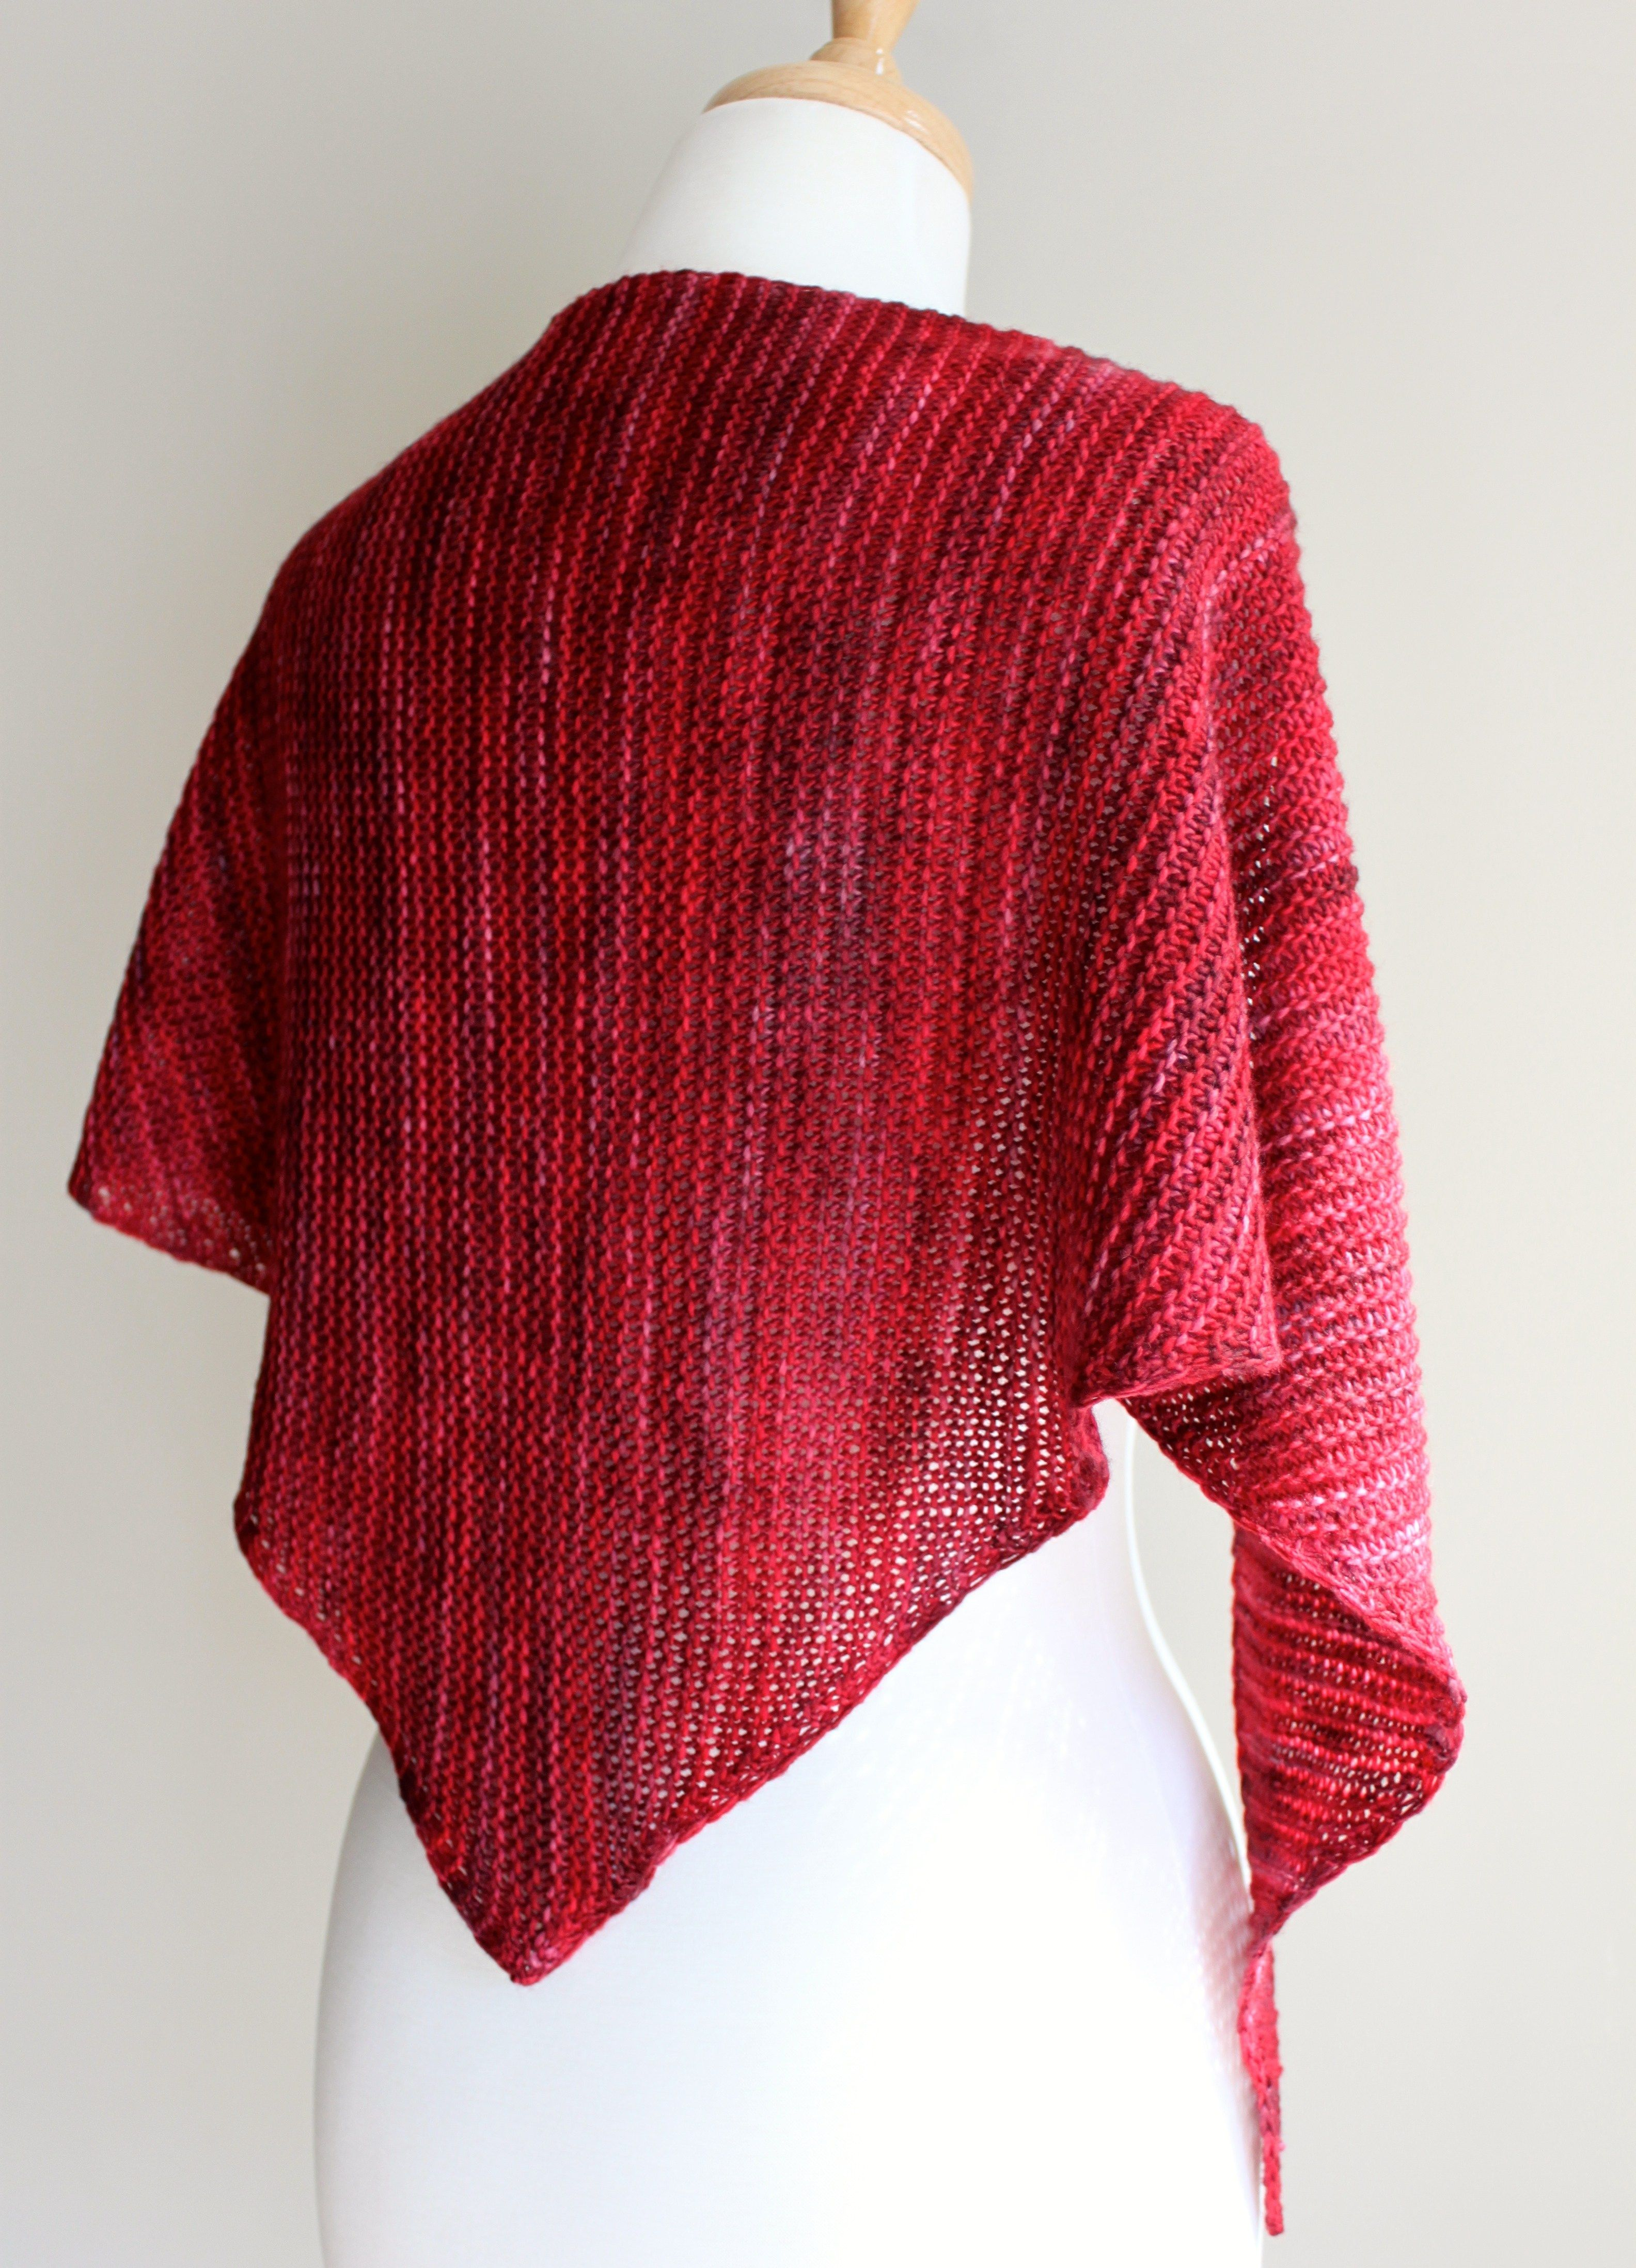 Truly Triangular Scarf full view | Knit | Pinterest | Patrones ...